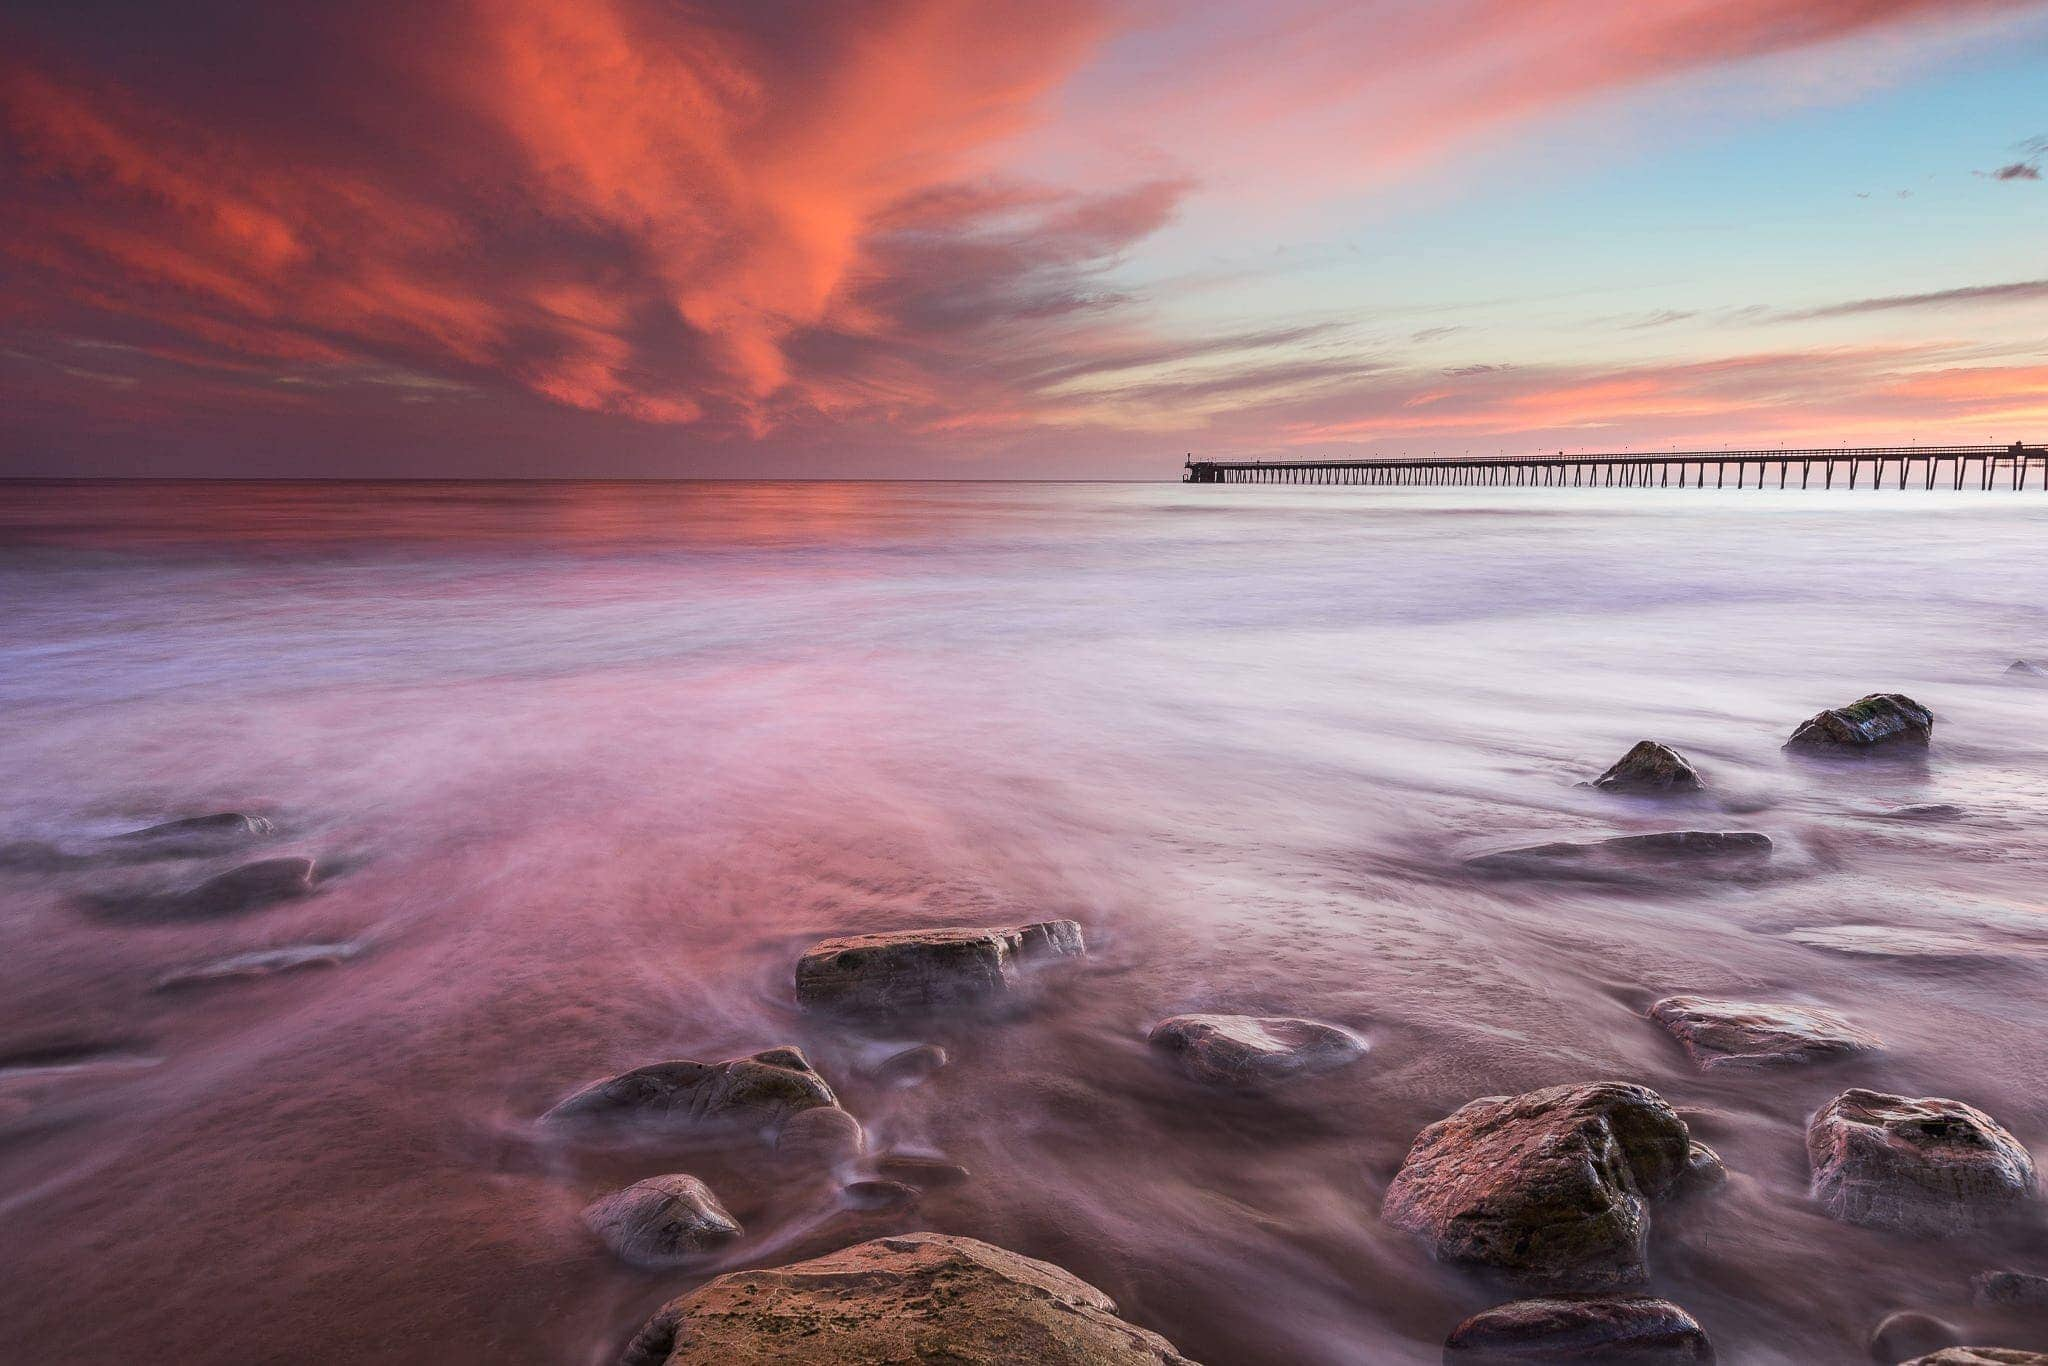 Francesco Gola Seascape Landscape Photography Long Exposure California Sunset Santa Barbara